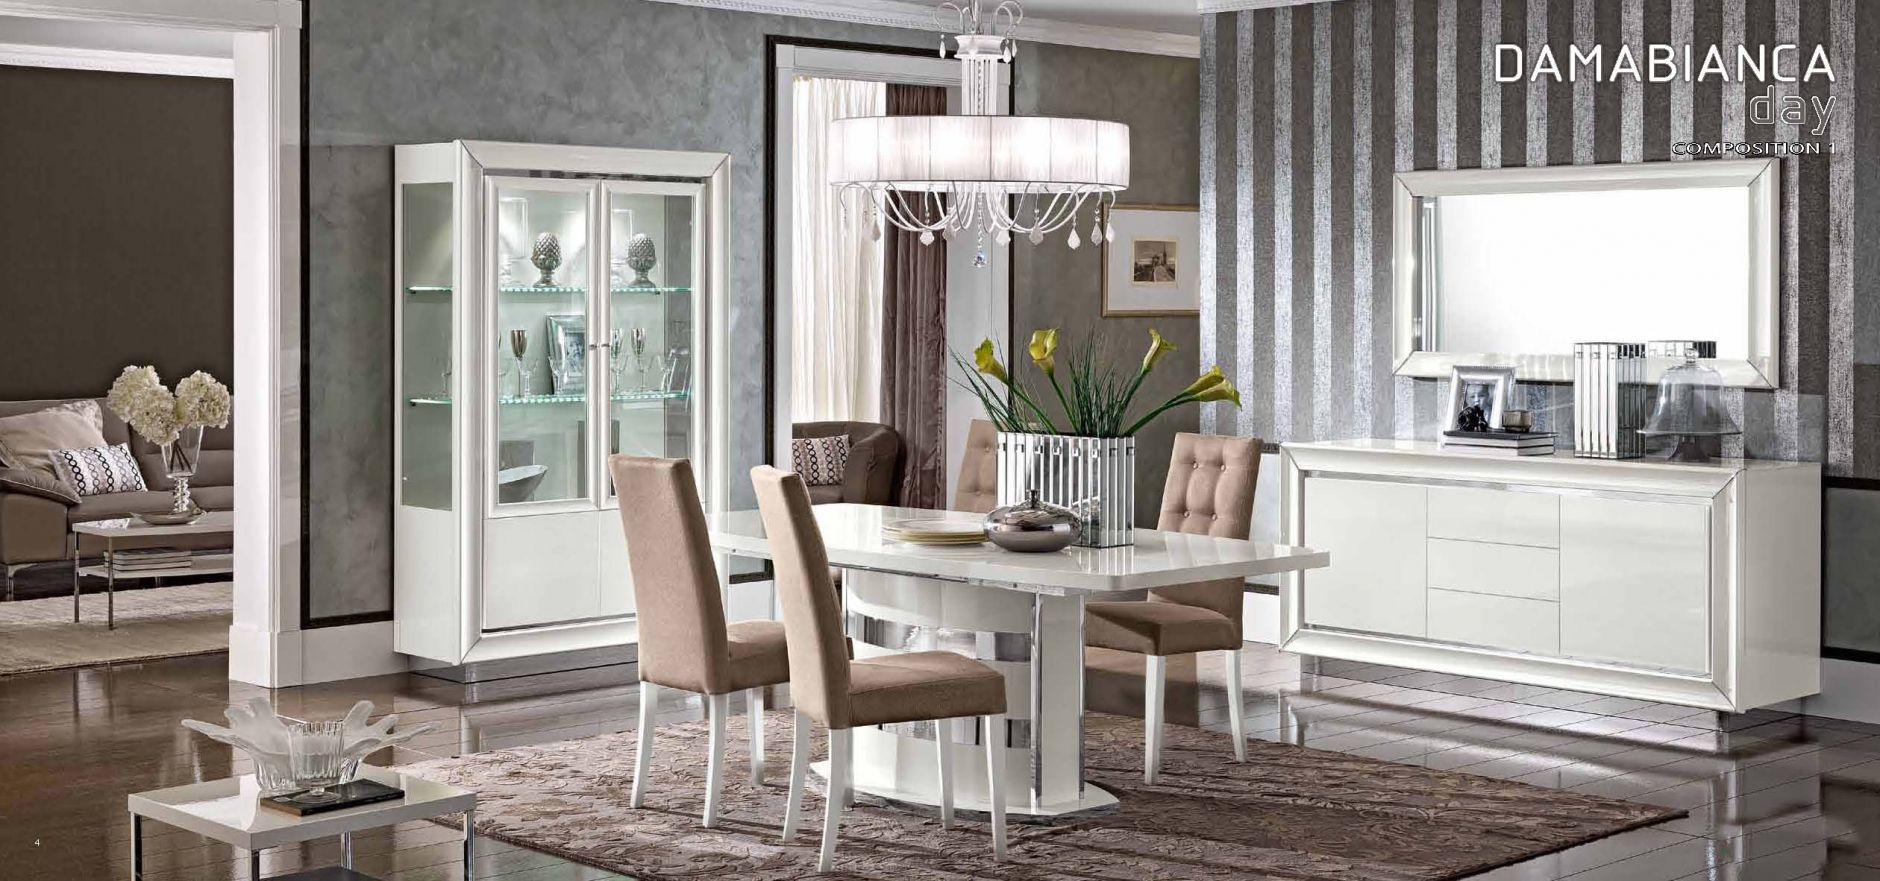 dinning rooms and chairs dining room camelgroup dama bianca dining room camelgroup dama bianca series composition 1